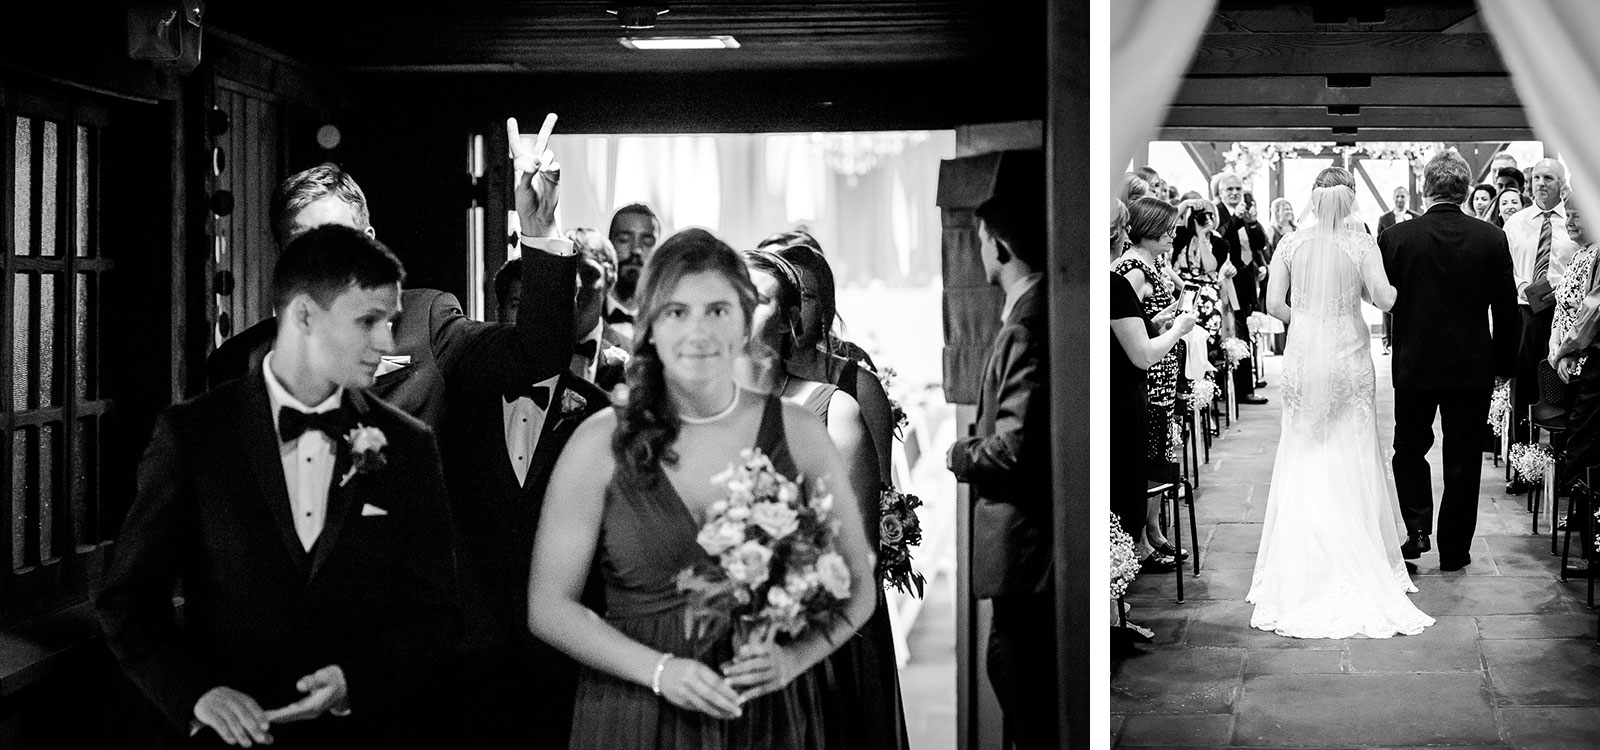 eric_and_christy_photographers_blog_wedding_katieandy-33-34